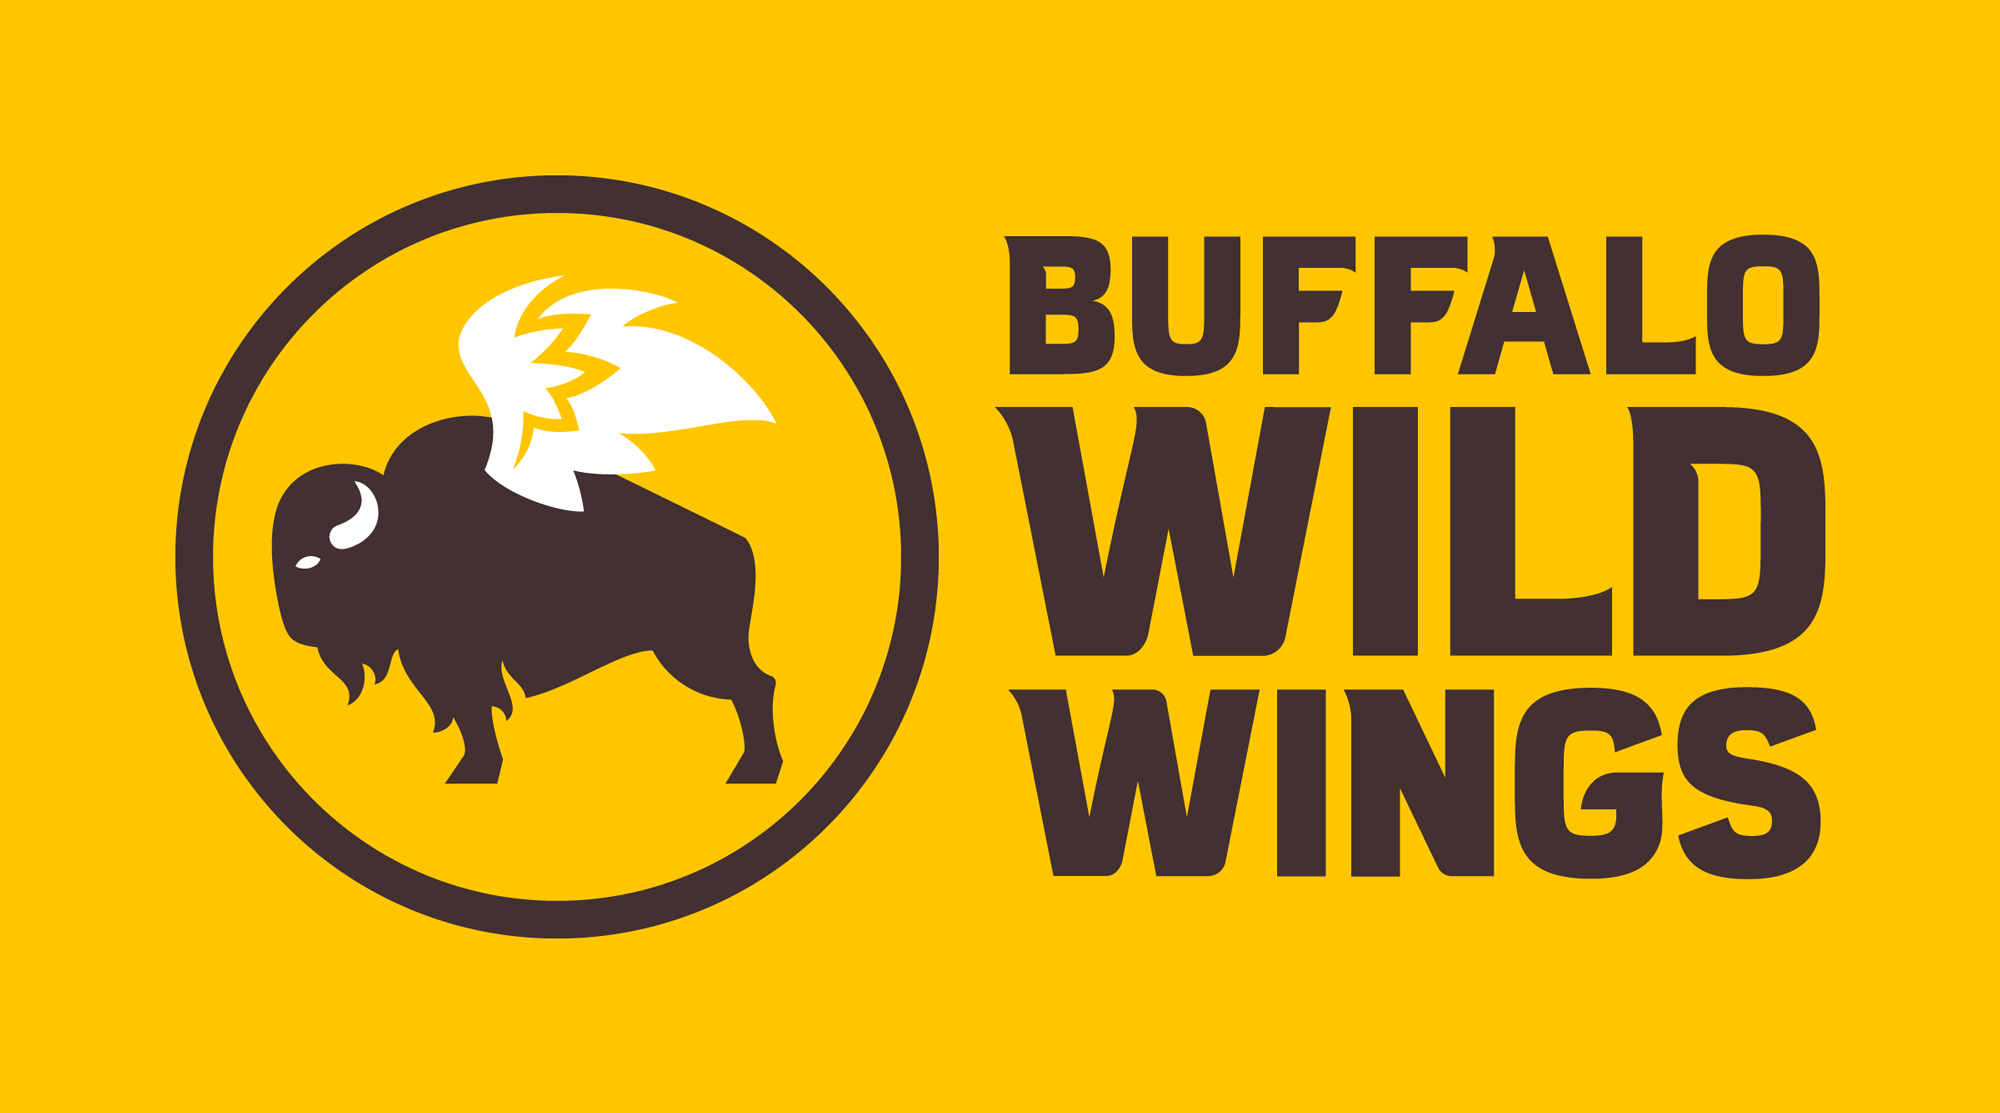 New Logo And Identity For Buffalo Wild Wings By Interbrand Buffalo Wild Buffalo Wild Wings Buffalo